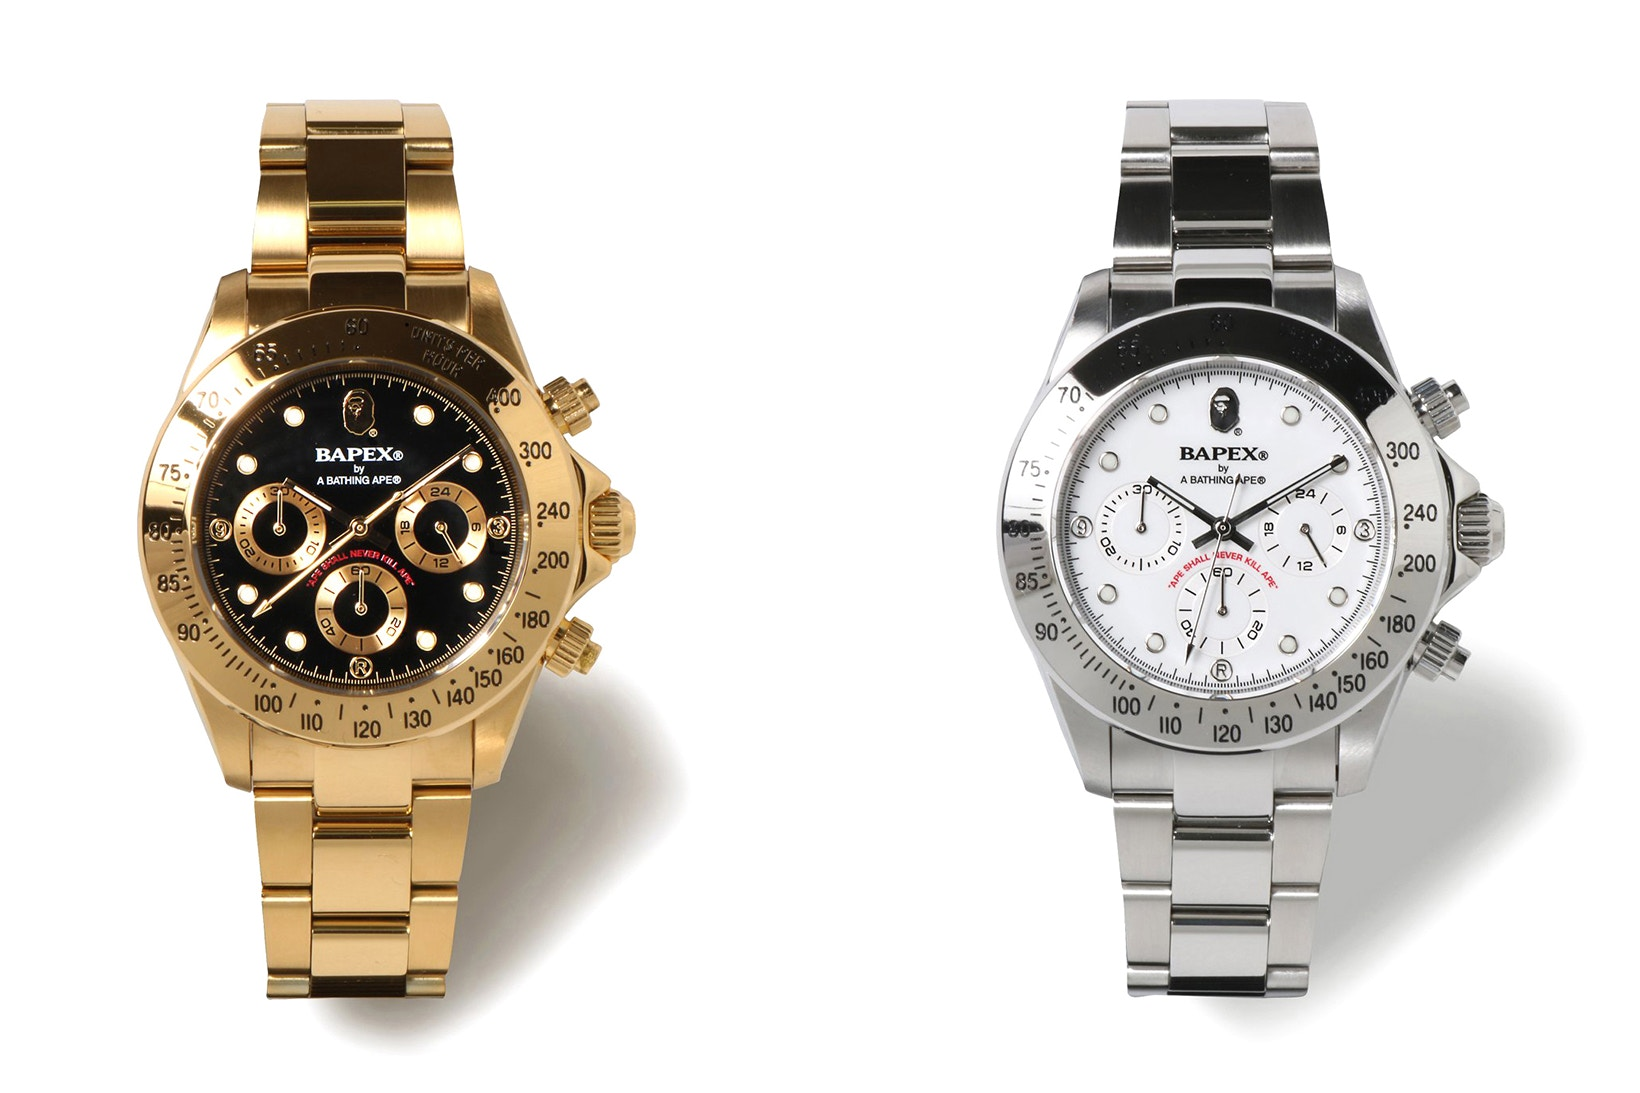 Bape S Rolex Lookalikes Raise Questions About Limits On Intellectual